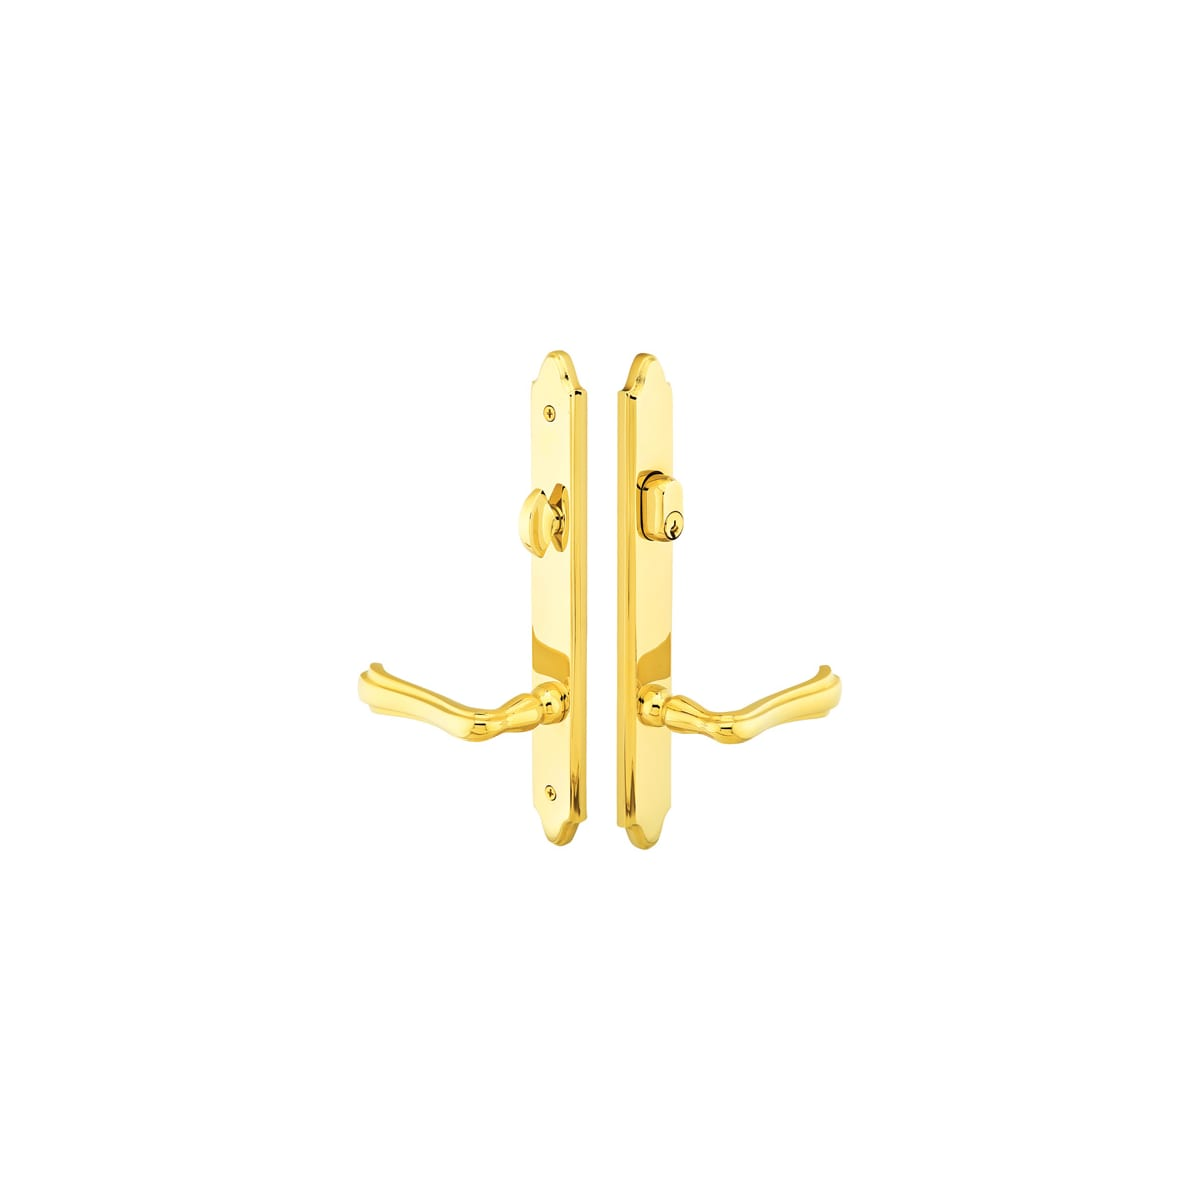 Emtek Classic Brass Door Configuration 3 Keyed Entry Multi Point Trim Lever Set with American Cylinder Above Handle